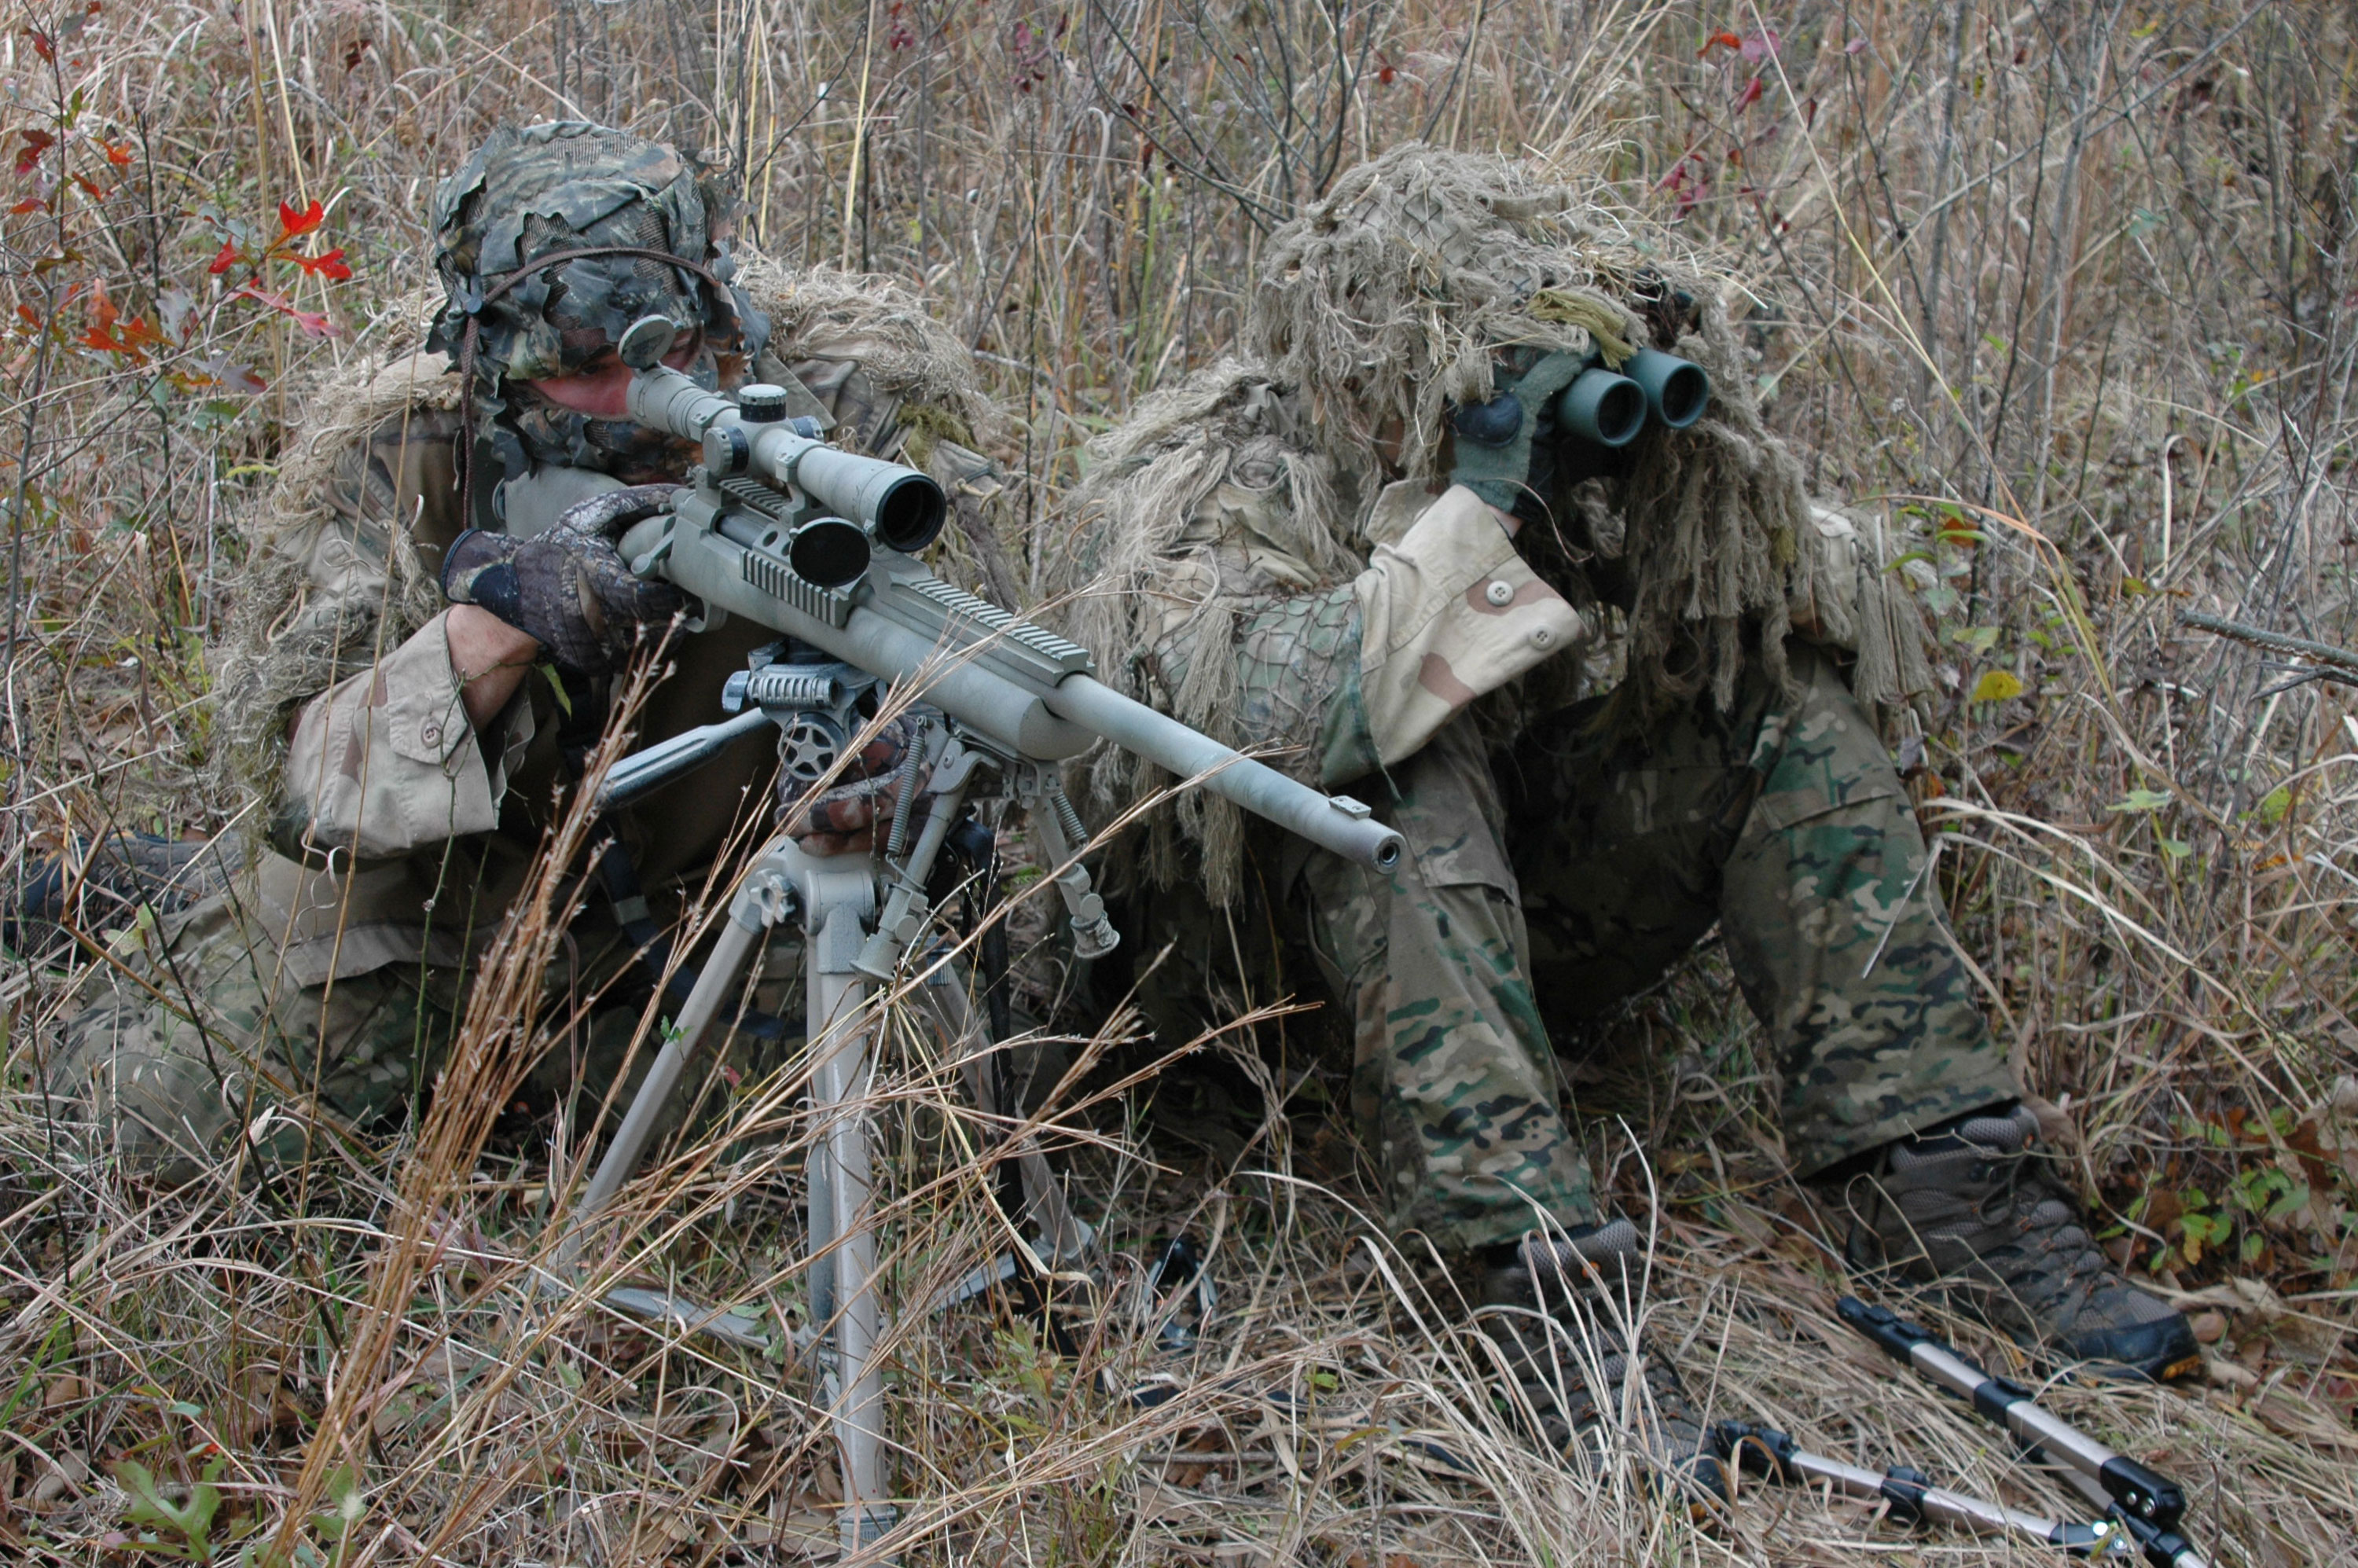 Photo featuring a 2 man Army Ranger sniper team More US SOF photos at 3000x1995